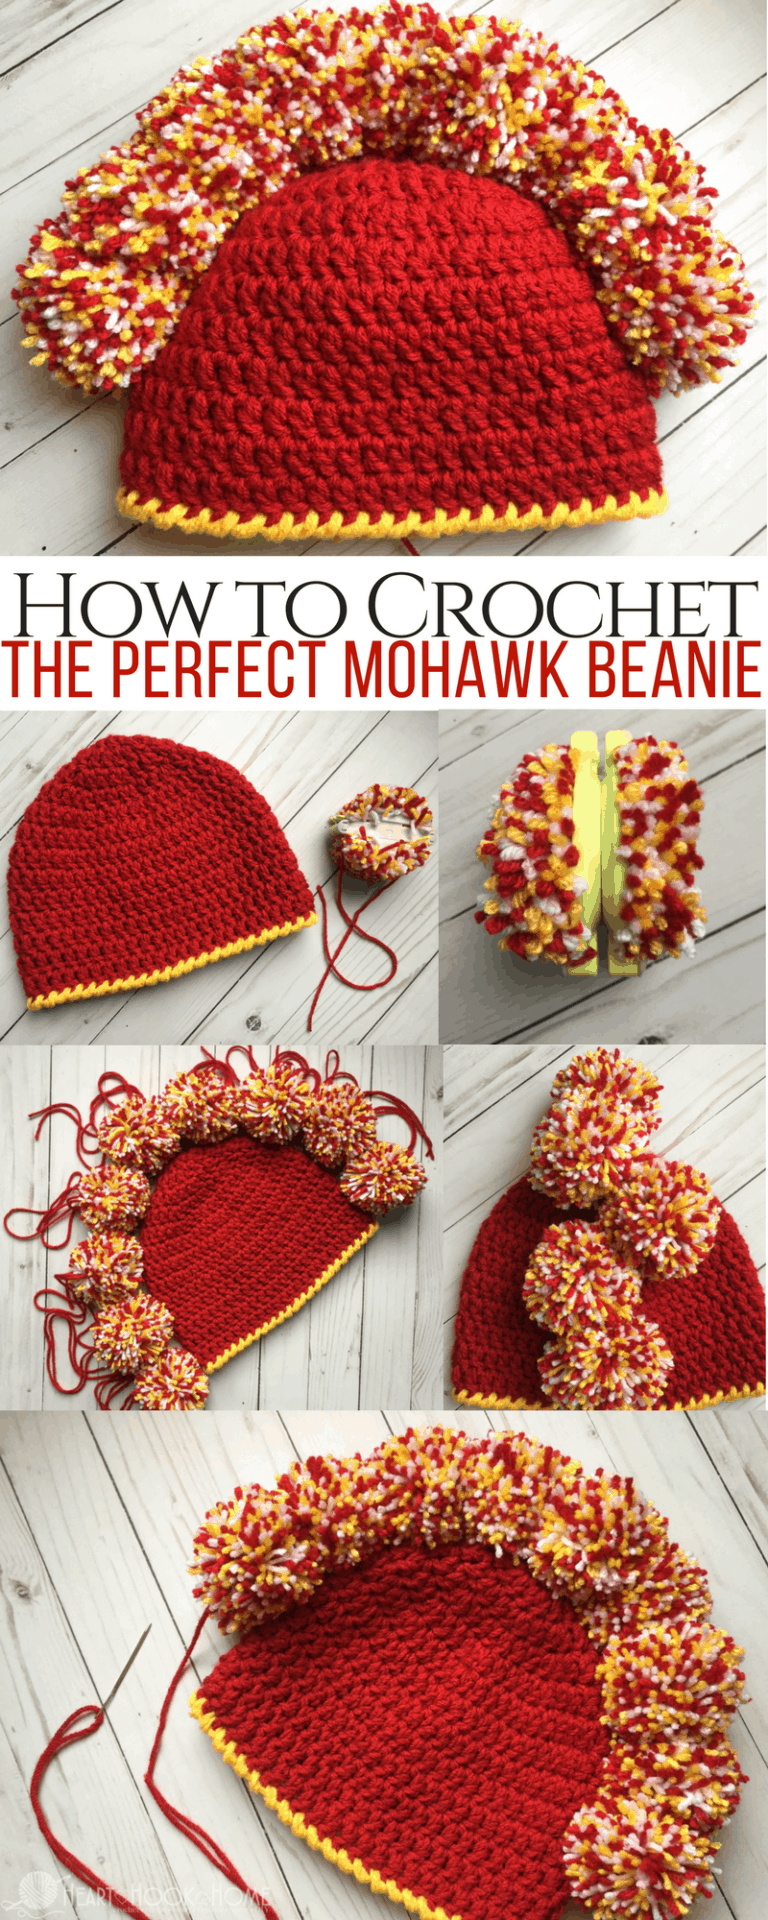 How to Make the Perfect Crocheted Mohawk Beanie with Pom Poms e9a623e56e2